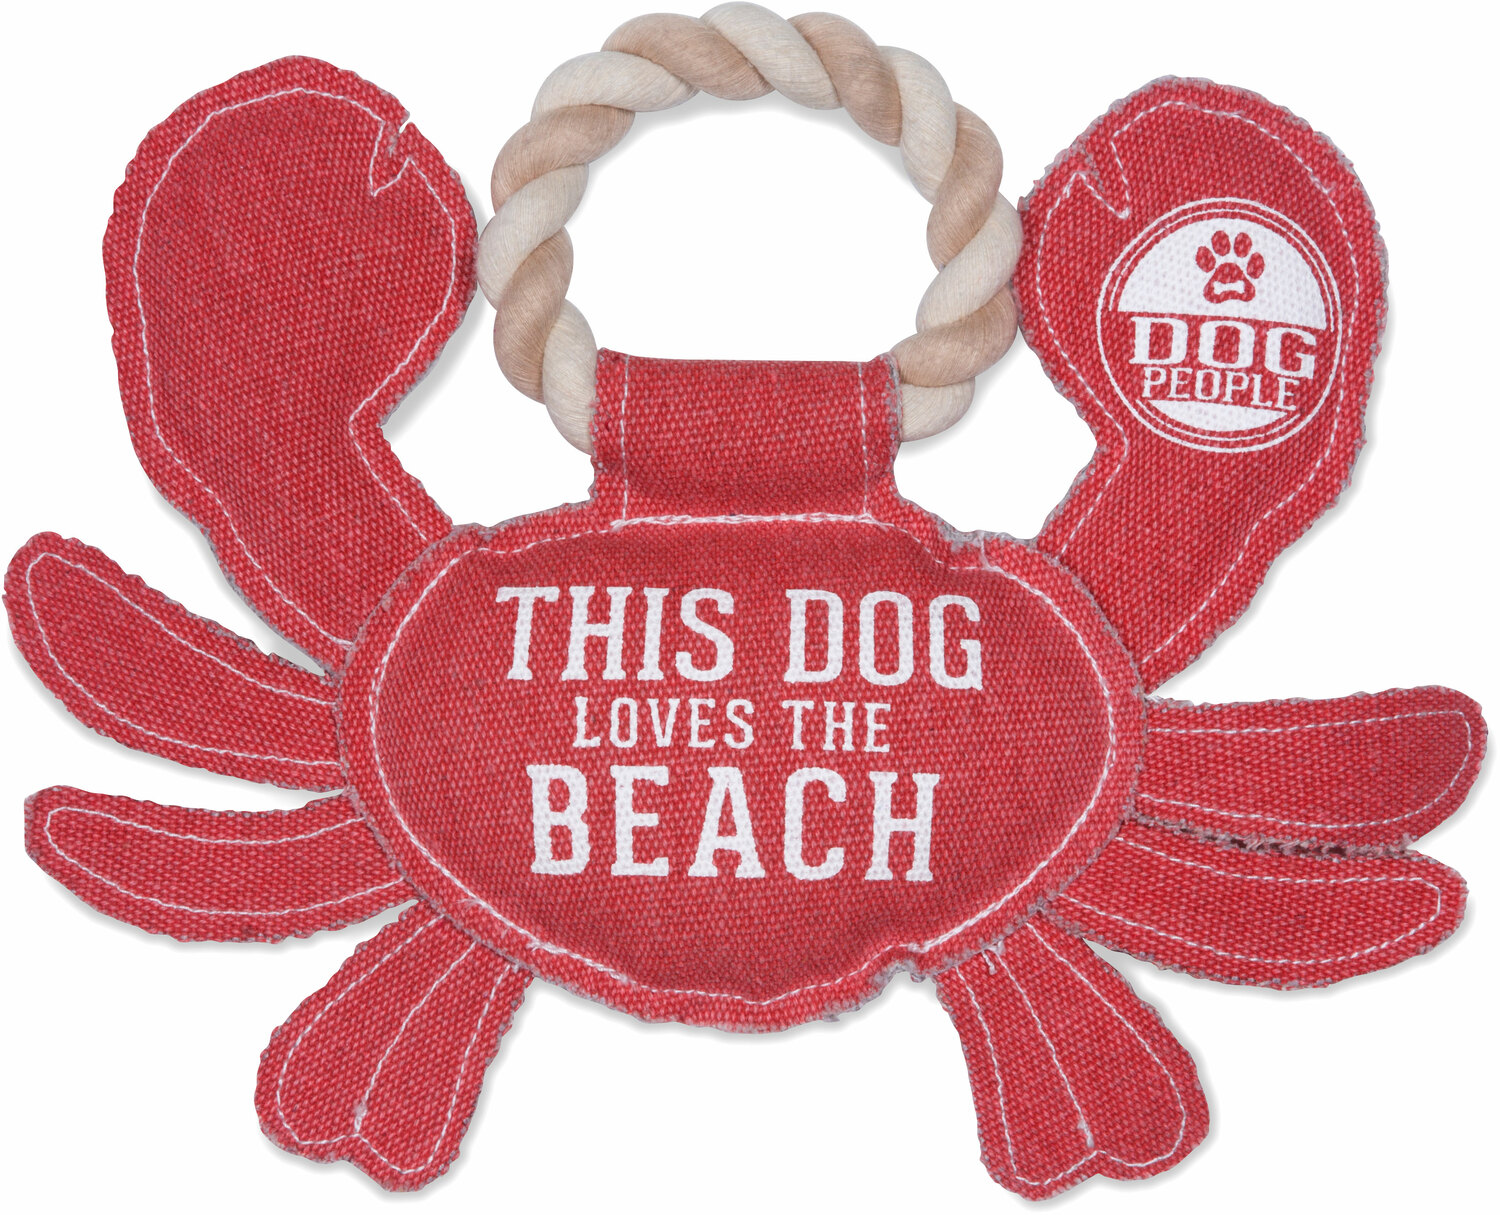 "Beach Dog by We Pets - Beach Dog - 10.75"" x 8"" Canvas Dog Toy on Rope"